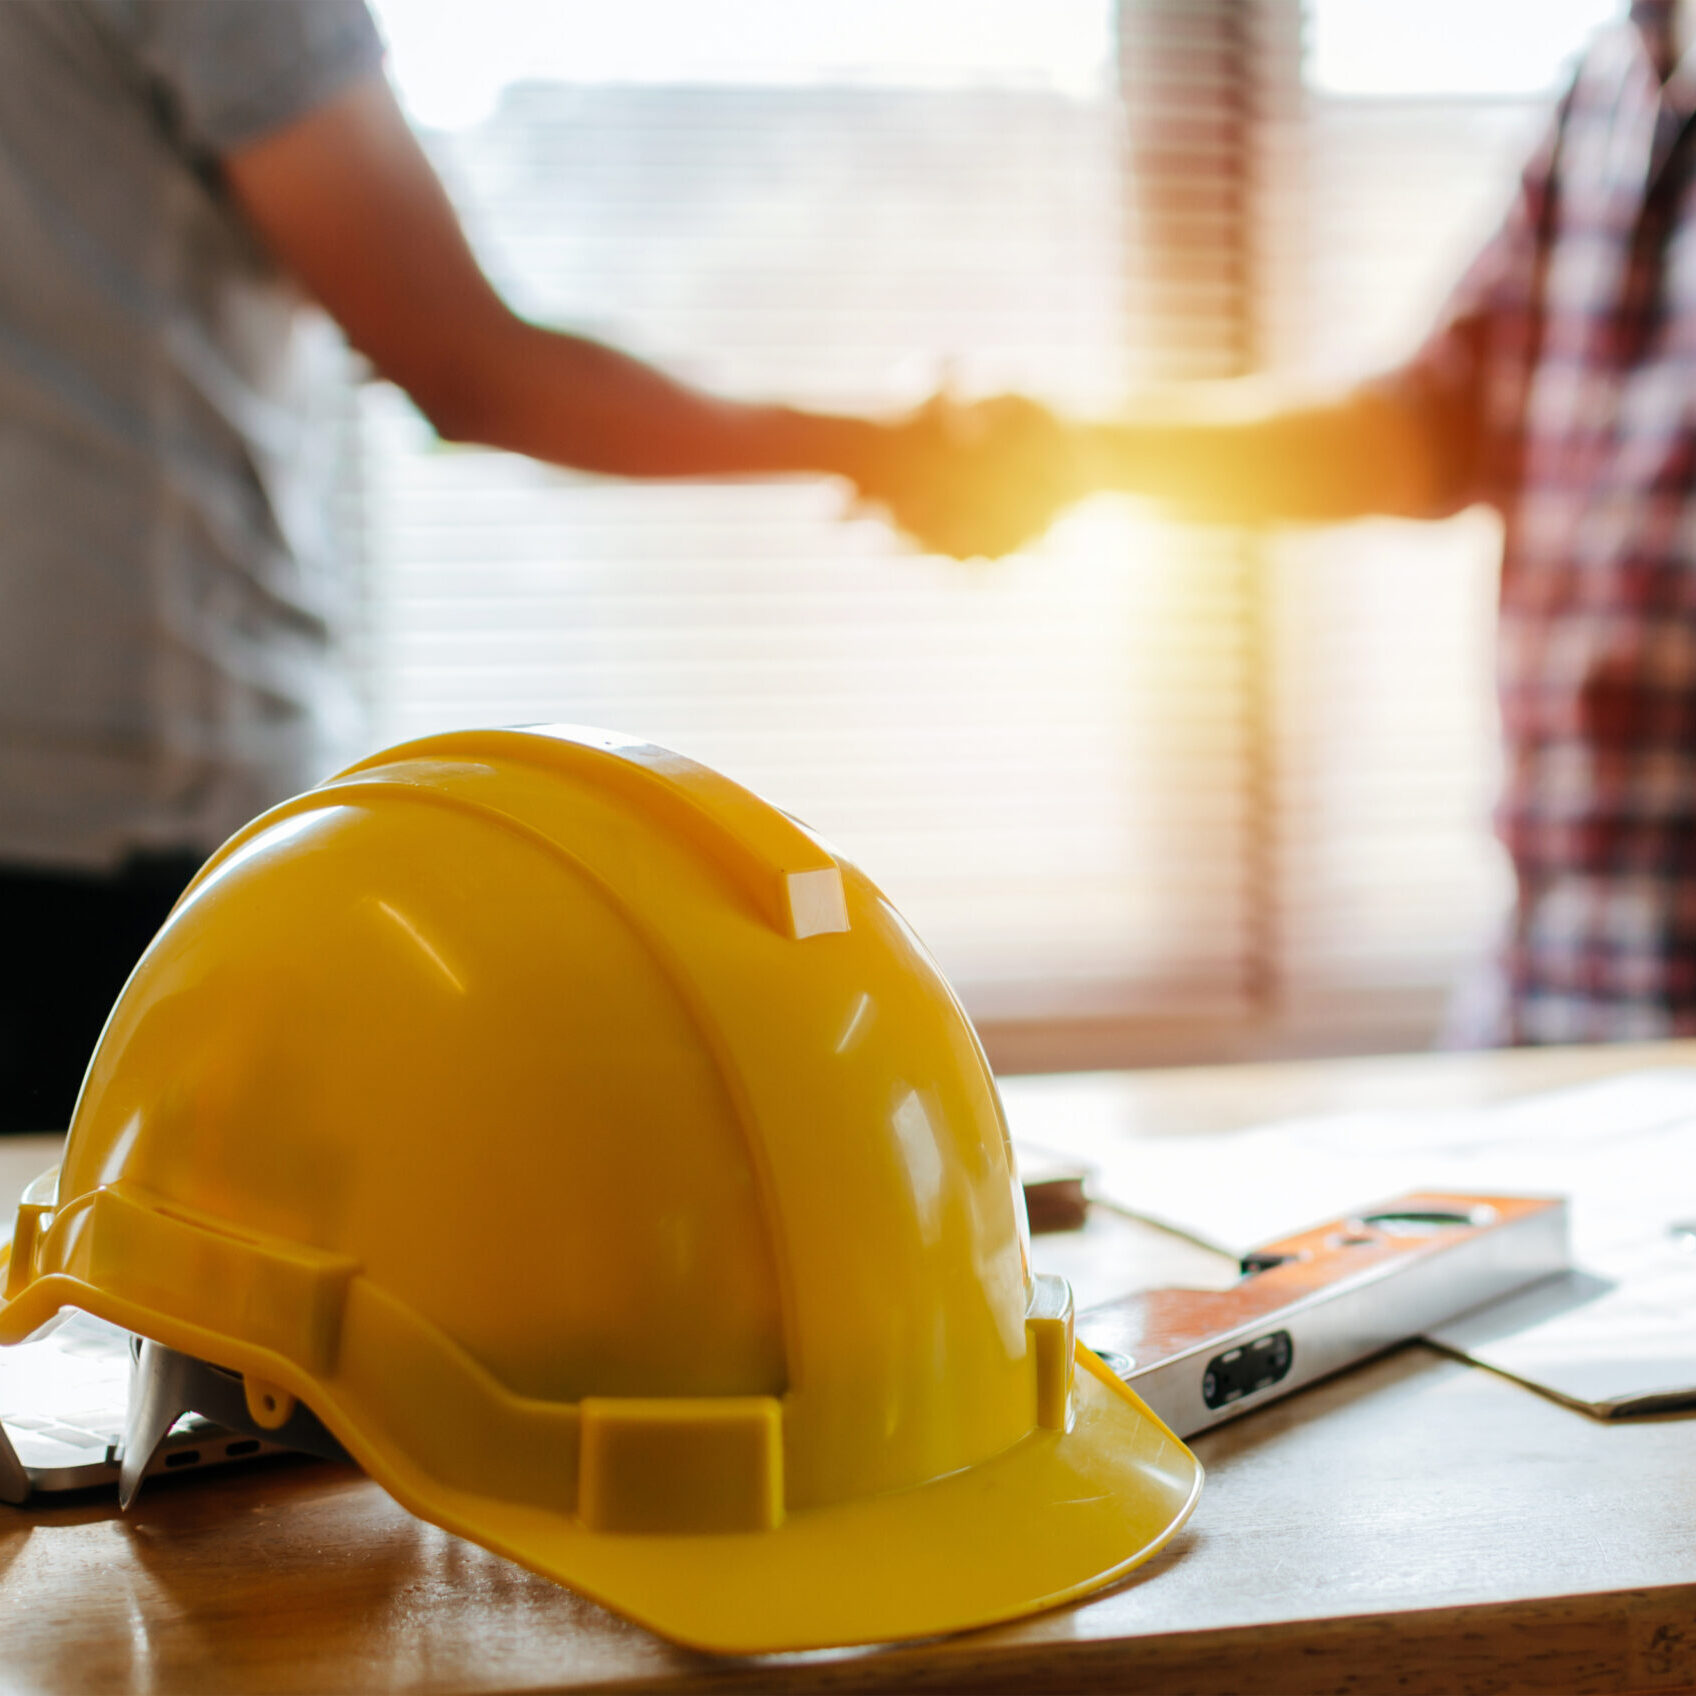 hard hat with men shaking hands in the background